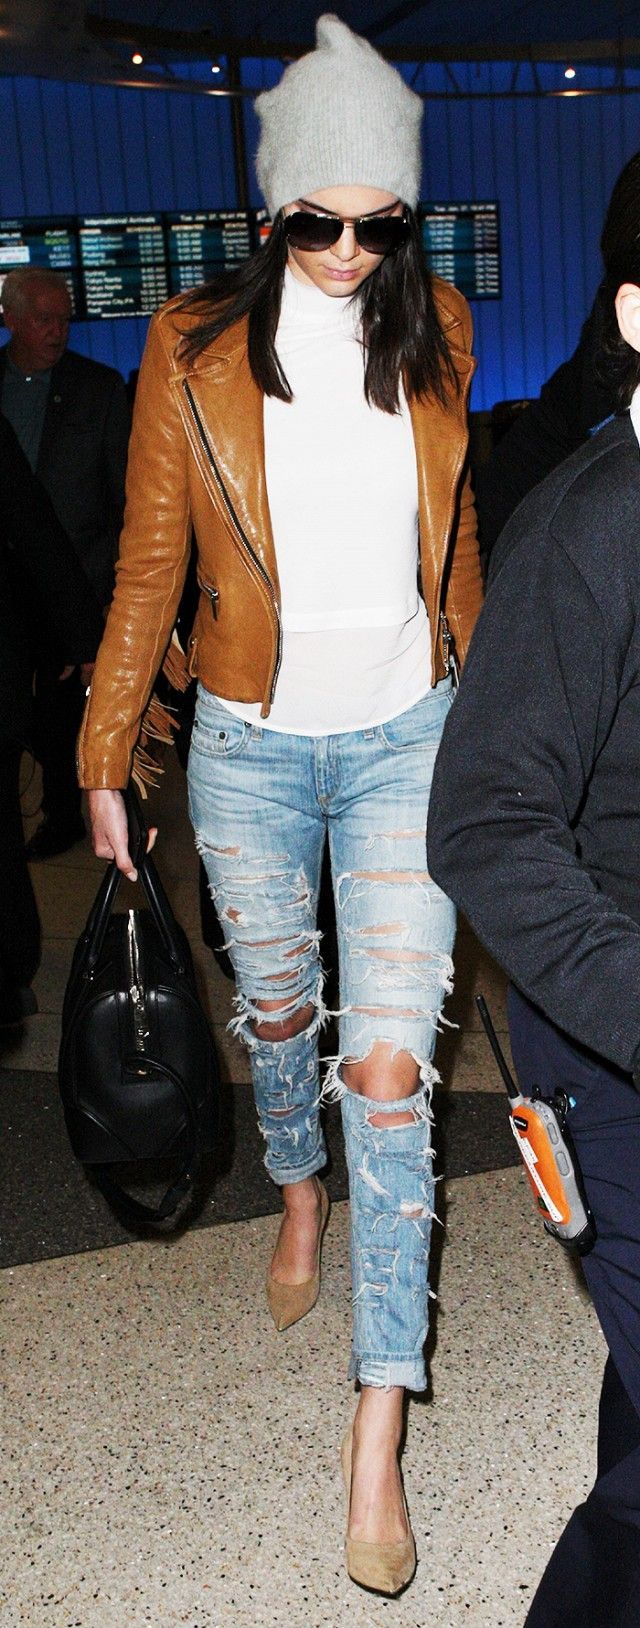 From Solange Knowles to Kendall Jenner, 3 Easy Celeb Looks to Copy via @WhoWhatWear